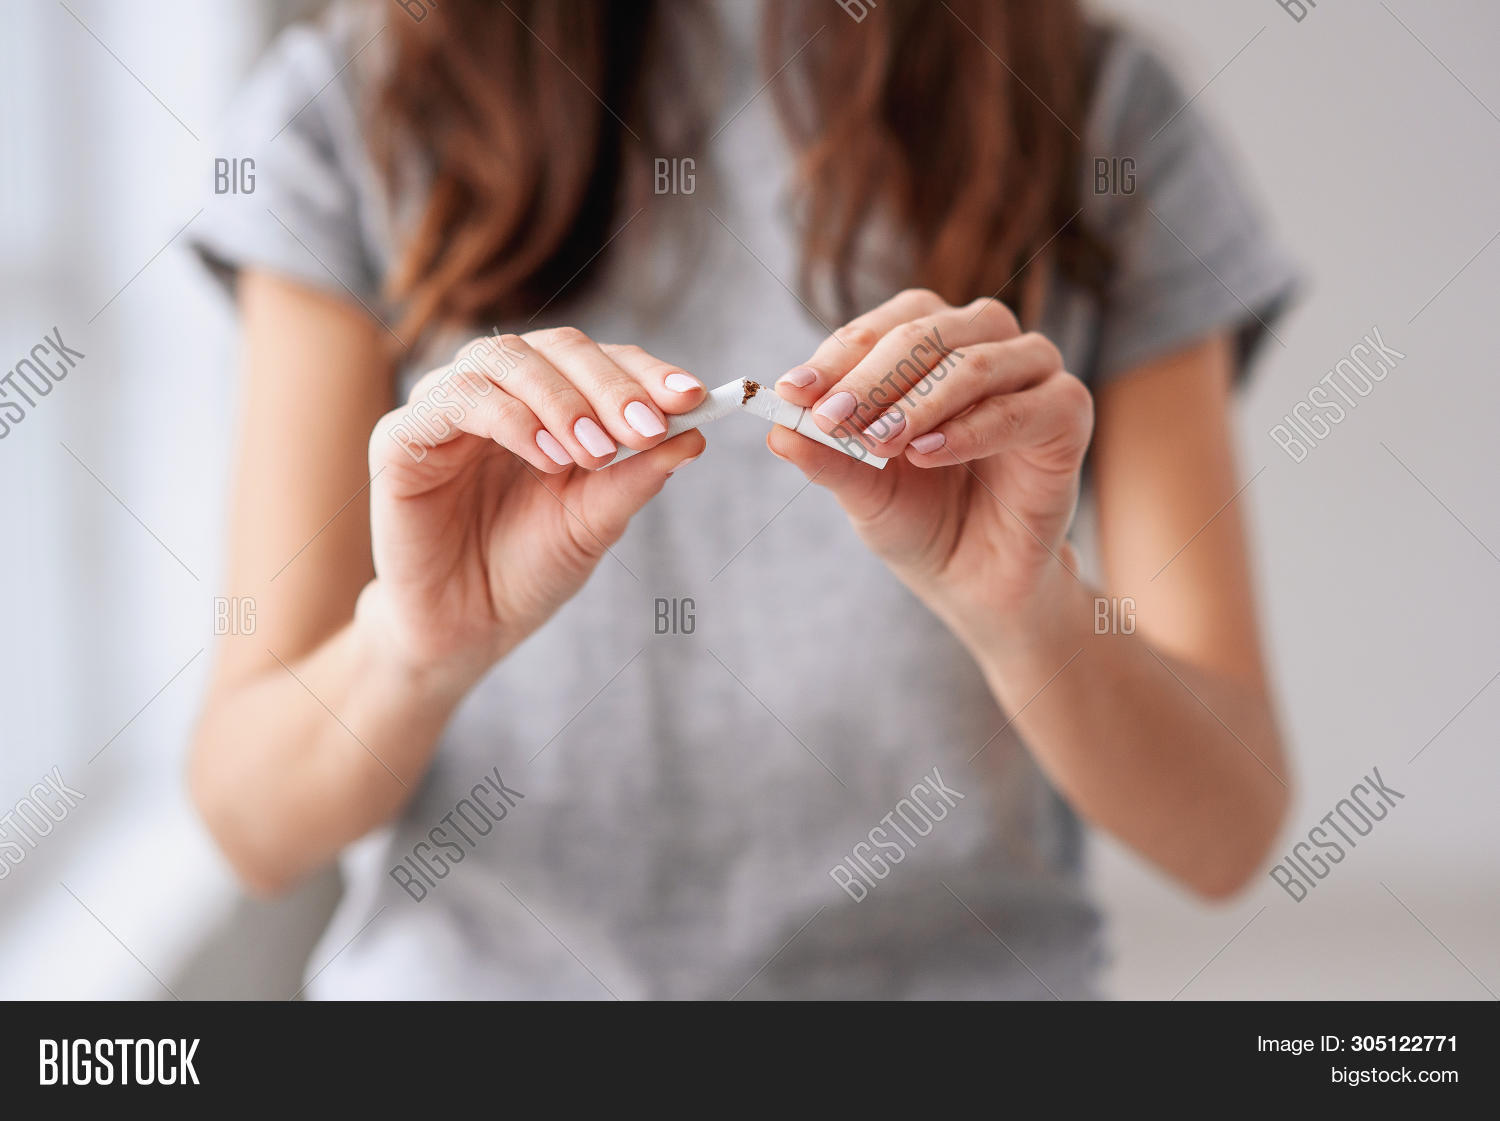 addiction,adult,attractive,background,beautiful,broken,care,casual,caucasian,cigarette,concept,danger,female,girl,hands,happiness,happy,health,healthy,holding,human,lifestyle,negative,nicotine,package,person,portrait,pretty,quit,quitting,sign,smile,smoke,smoker,stop,success,symbol,tobacco,unhealthy,willpower,woman,young